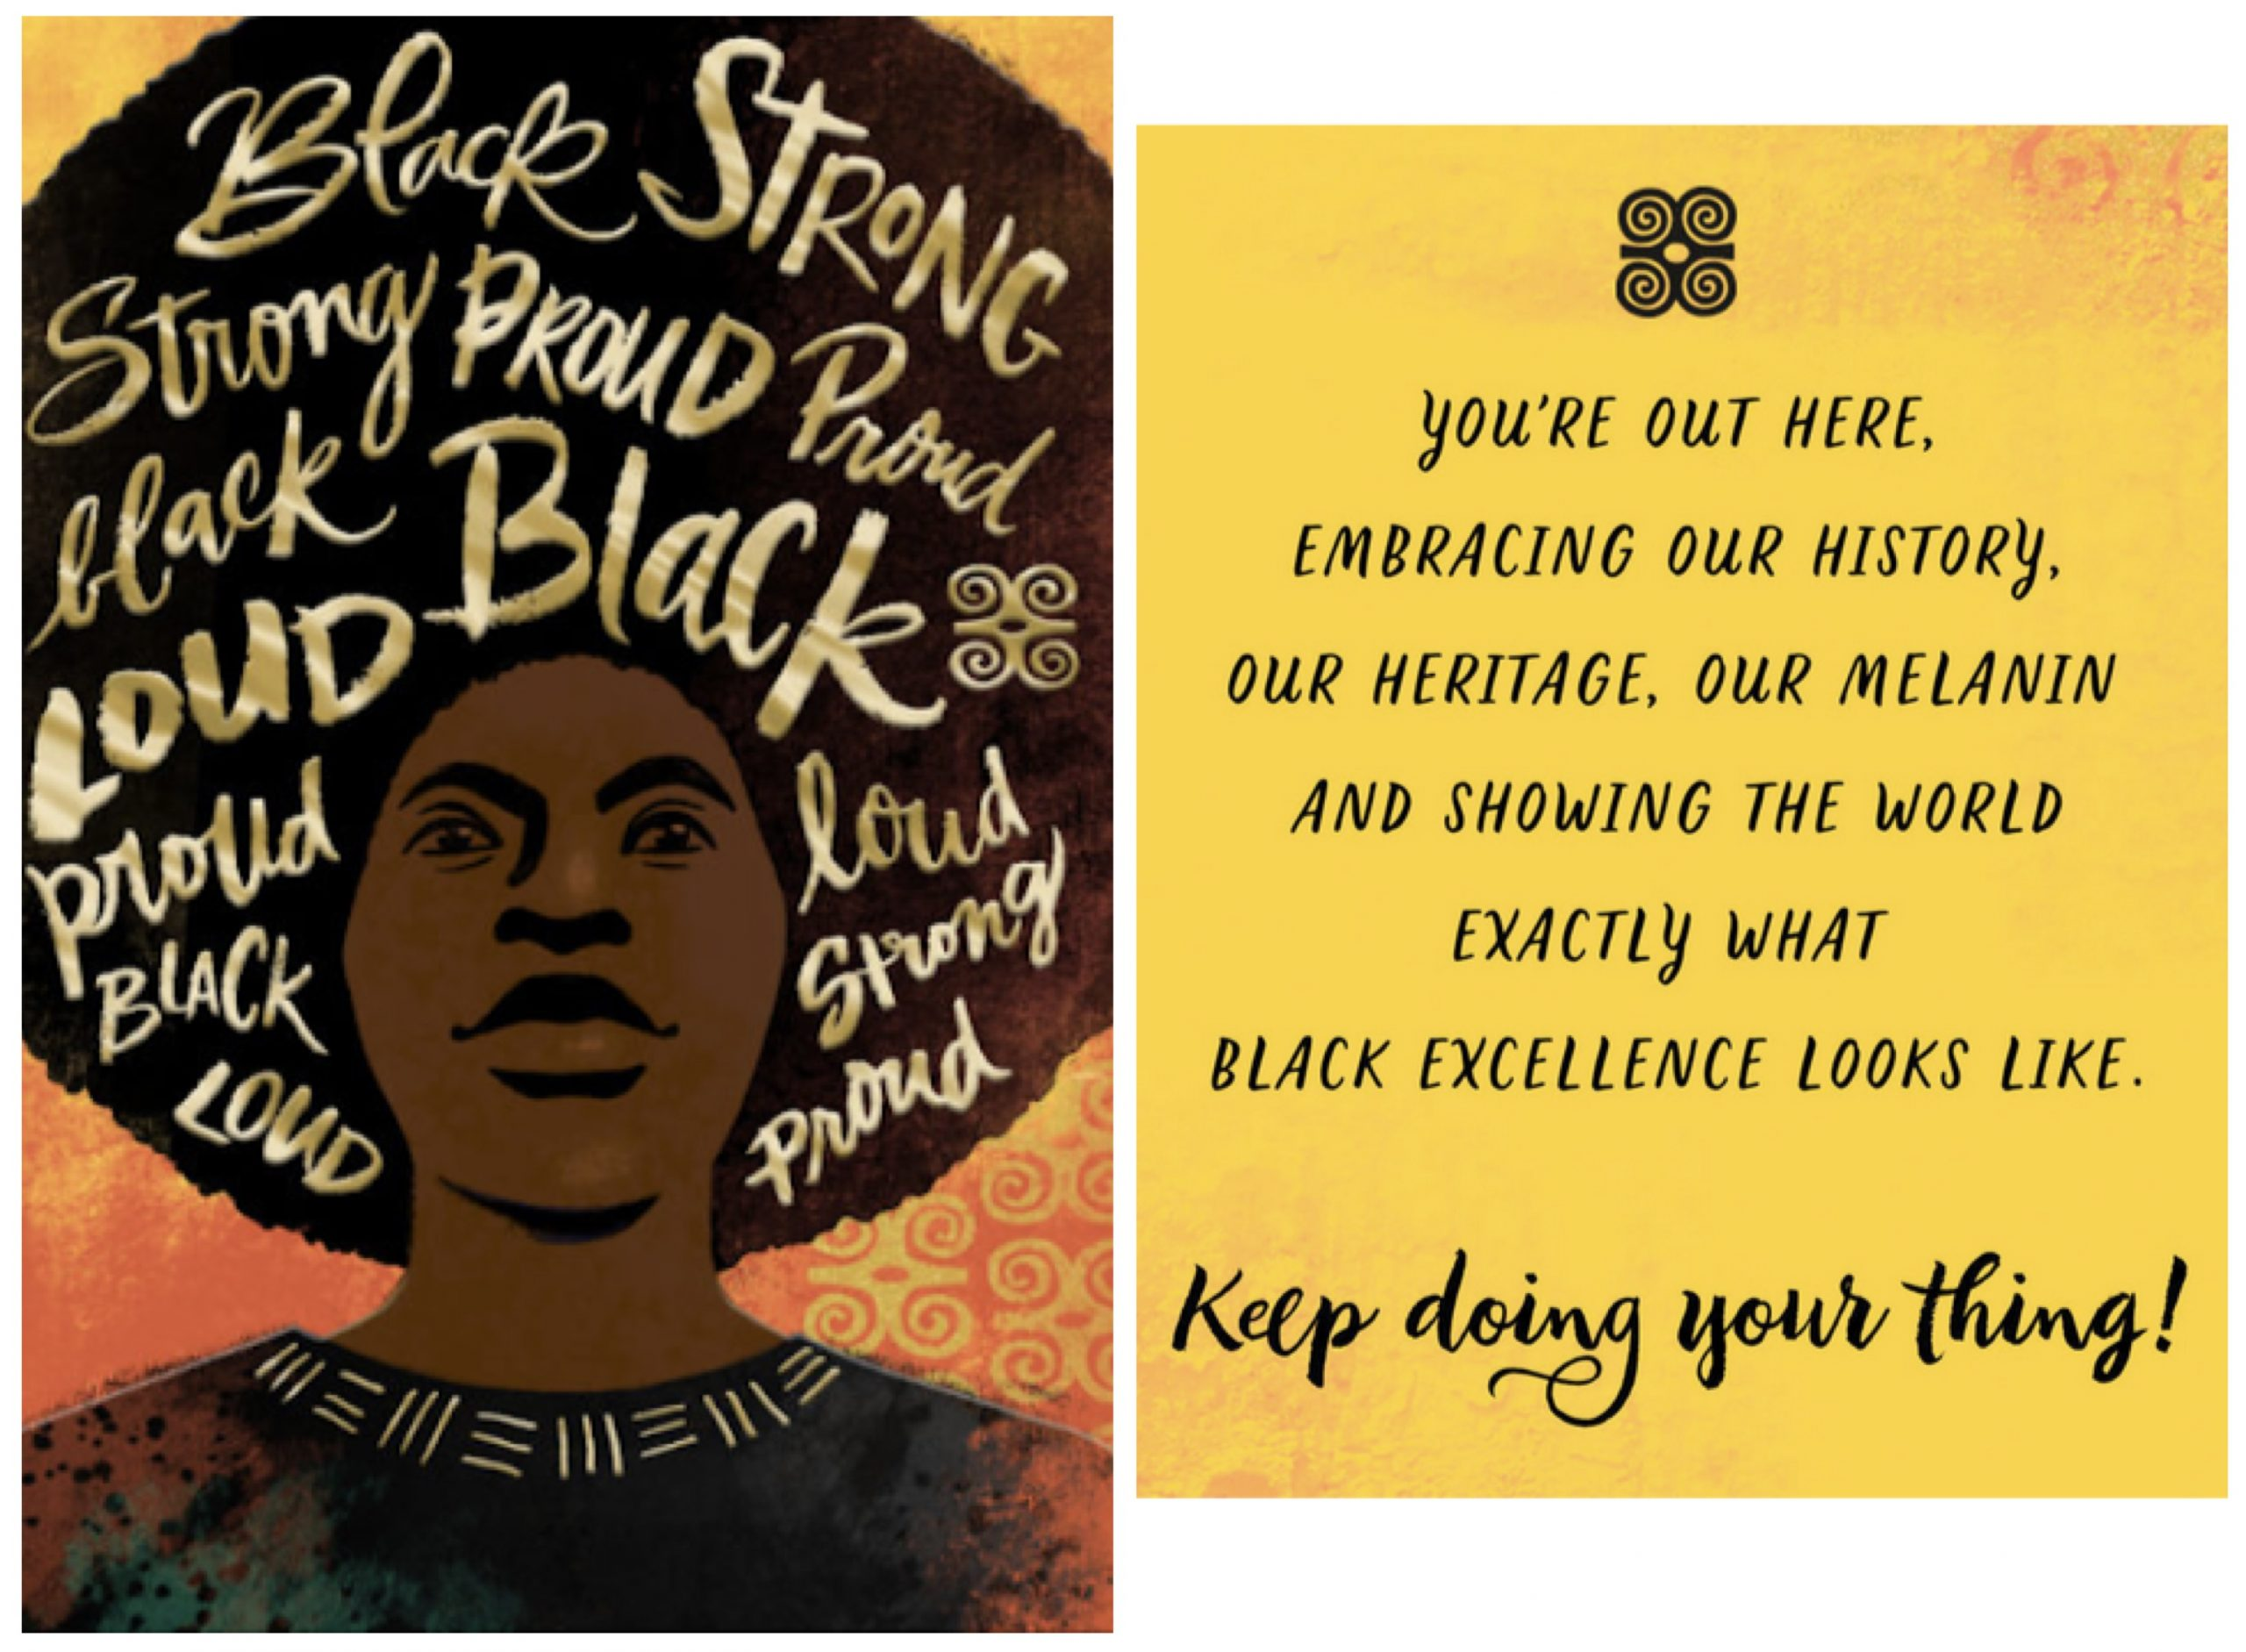 """Greeting Card: Outer text, """"Black Strong, Strong Proud, Black Loud Proud."""" Inner text, """"You're out here, embracing our history, our heritage, our melanin and showing the world exactly what Black excellence looks like. Keep doing your thing!"""""""